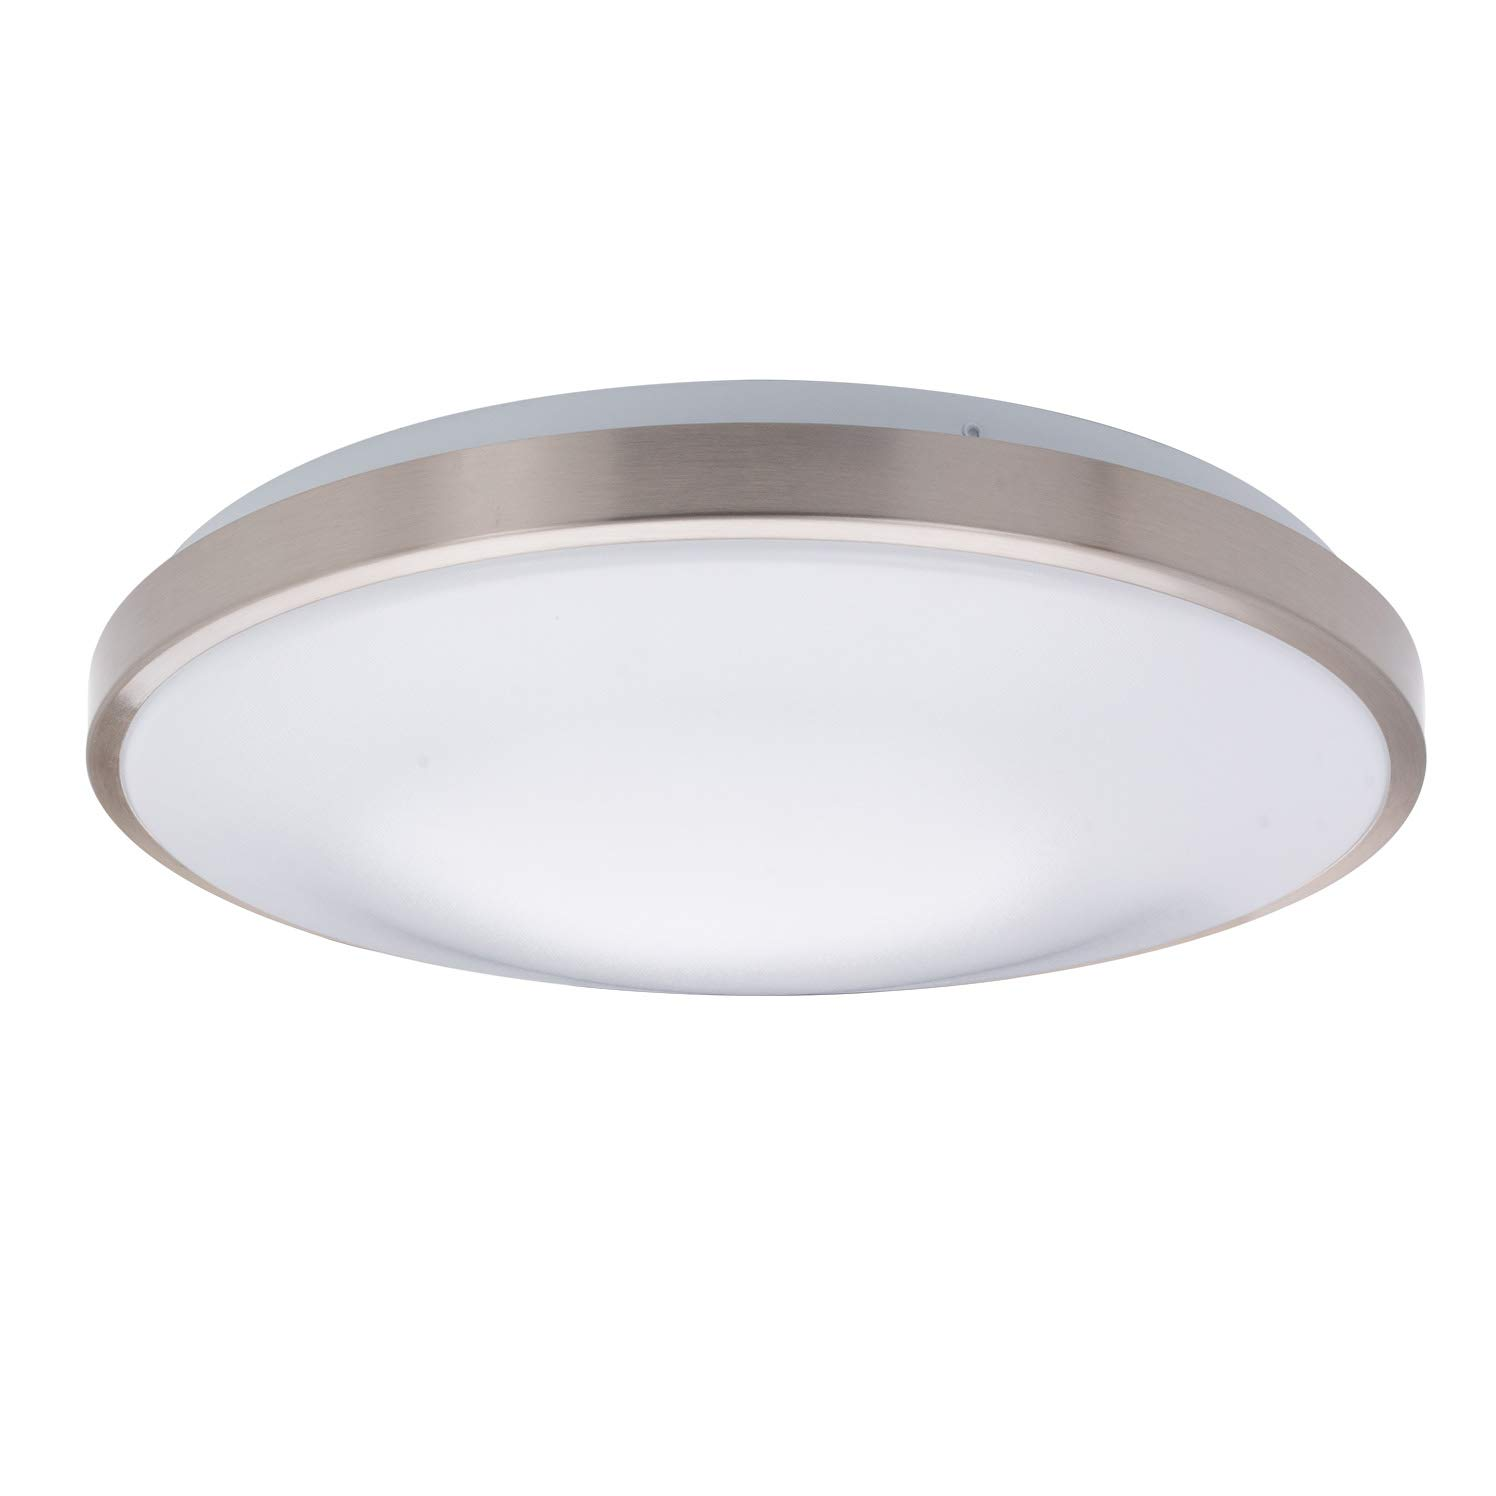 Details about ostwin 15 inch led dimmable flush mount ceiling light metal ring fixture round